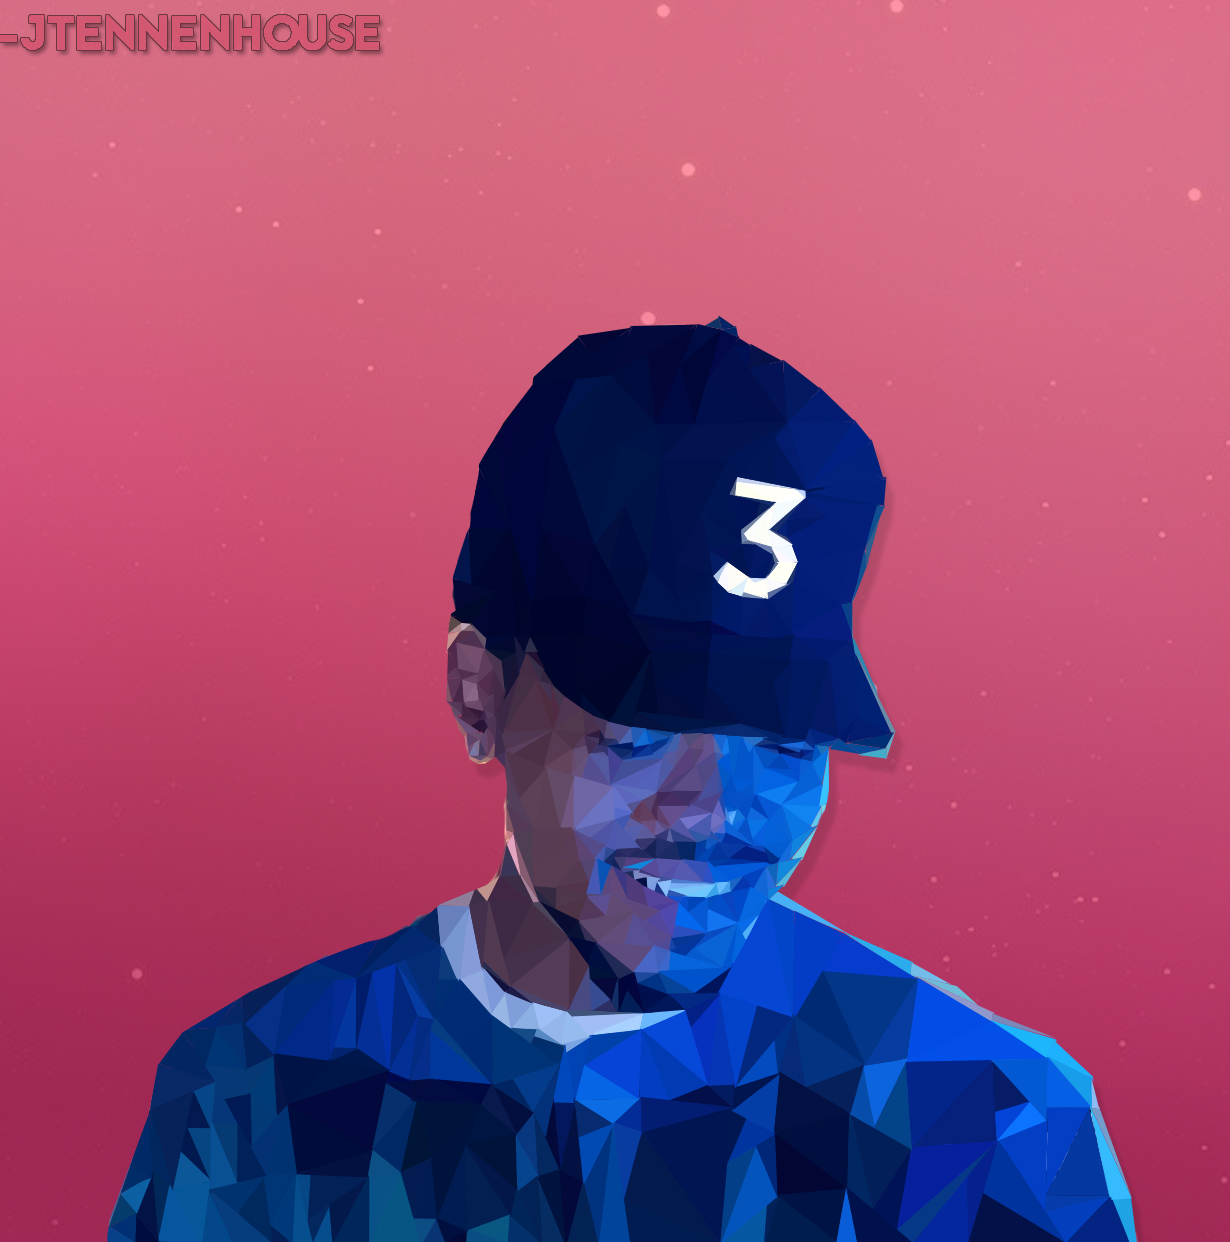 Coloring book download link chance the rapper -  Low Poly Chance The Rapper By Jtennenhouse